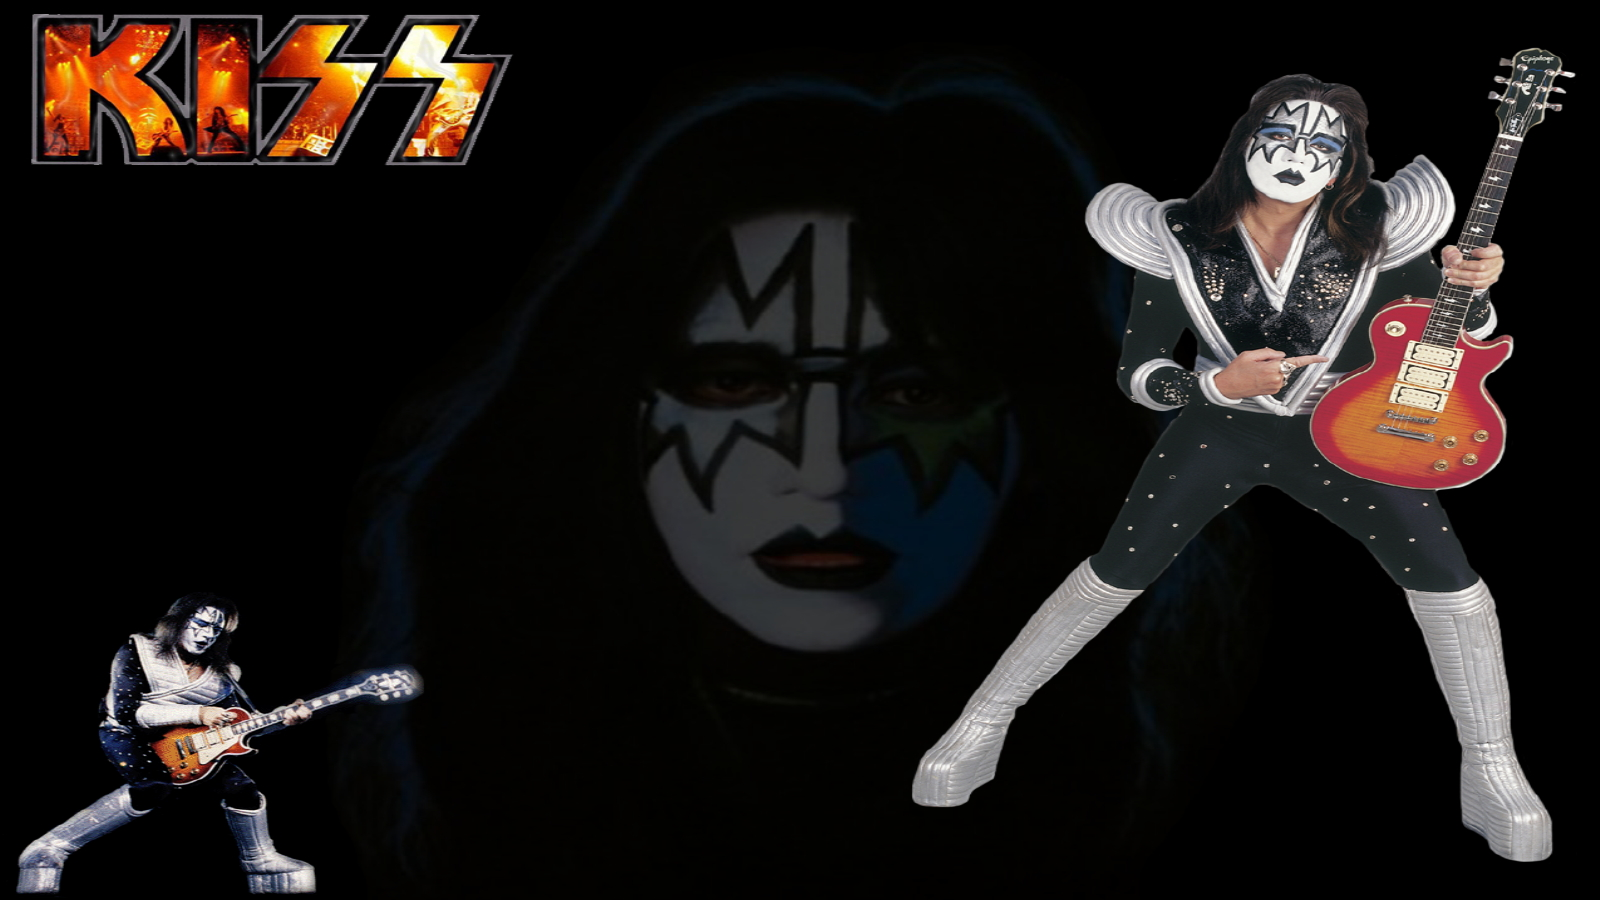 Ace From Kiss Wallpaper And Background Image